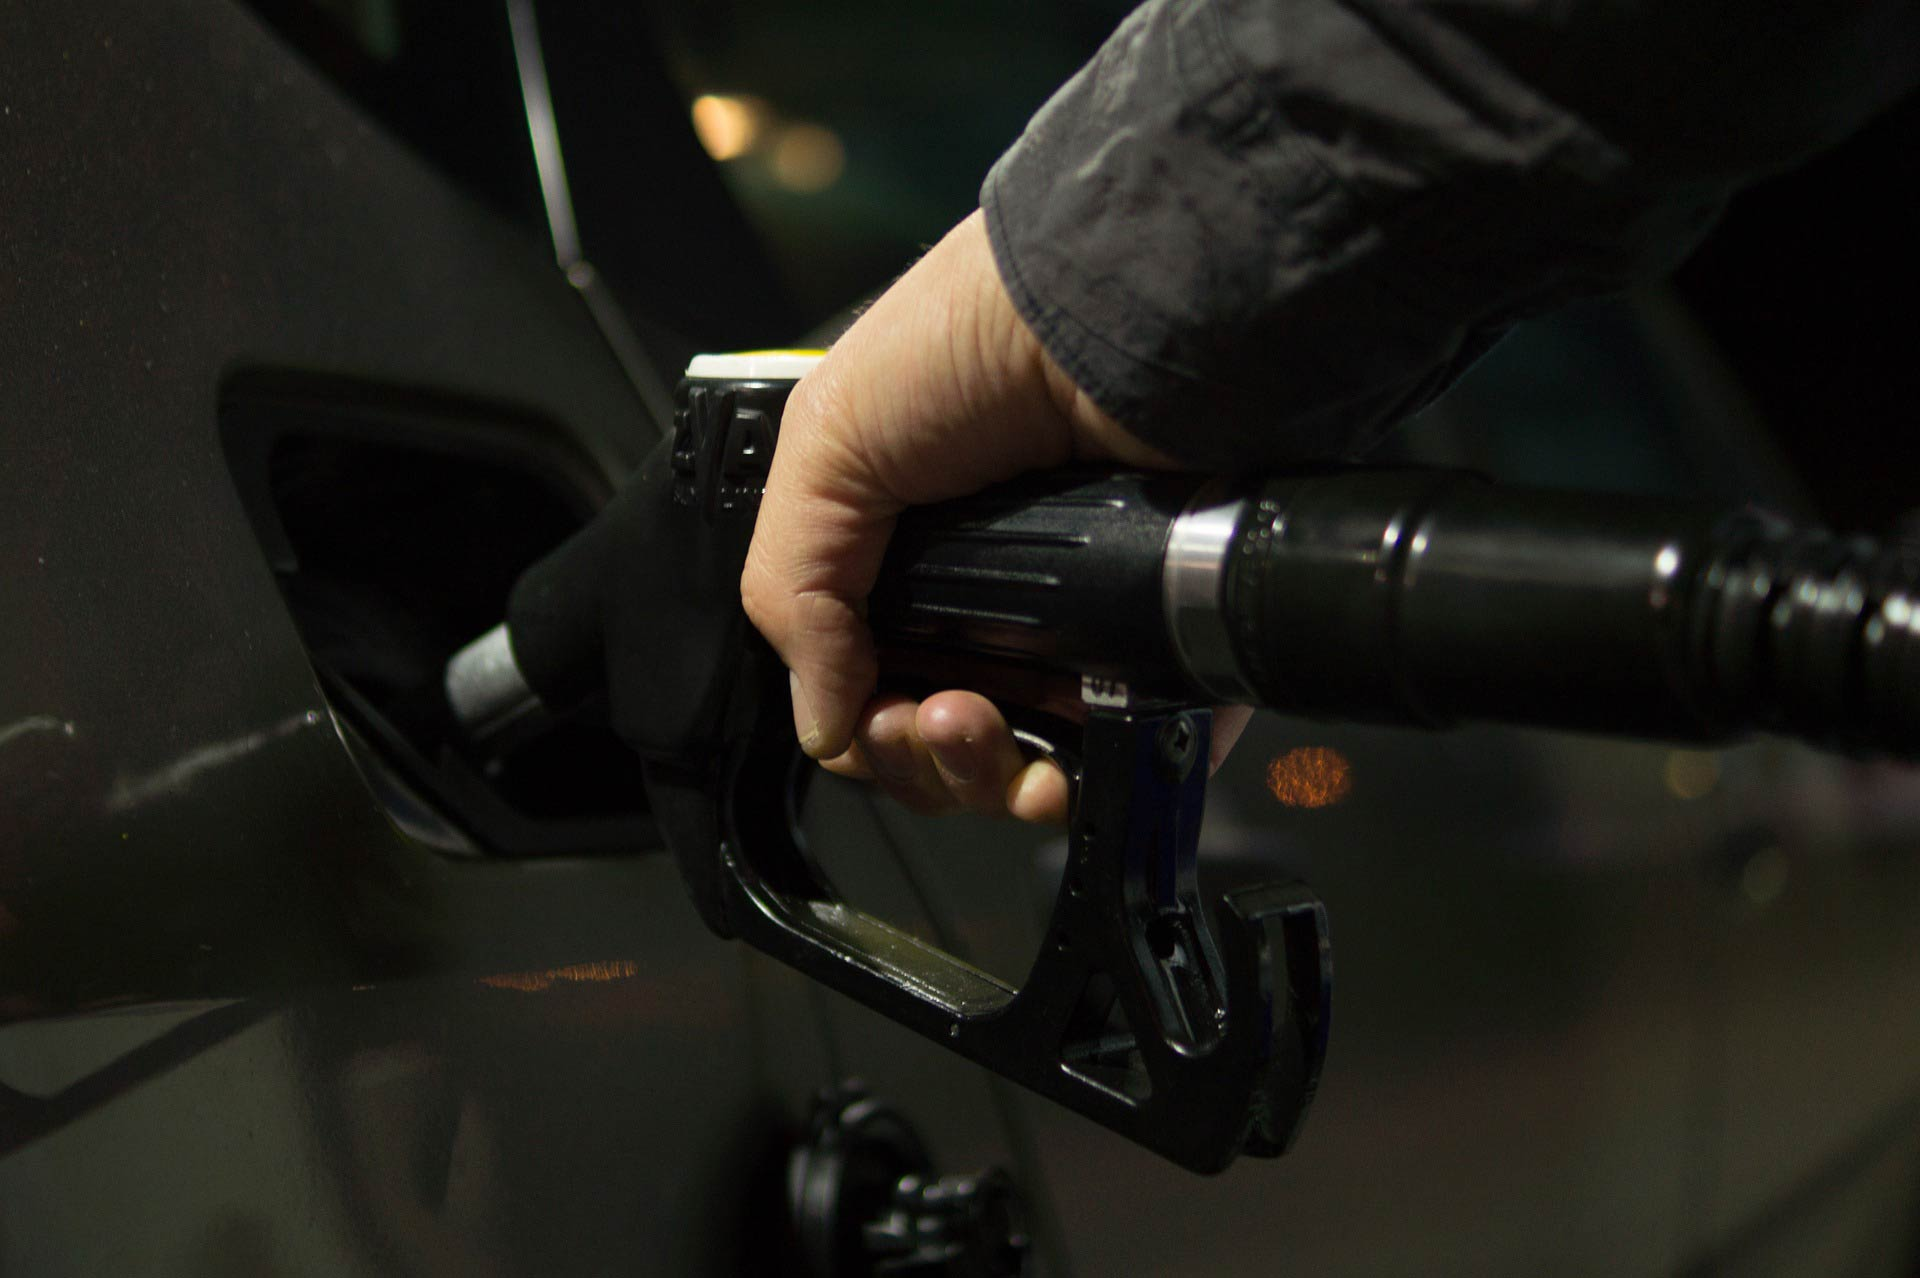 Pumping gas. (stock image)